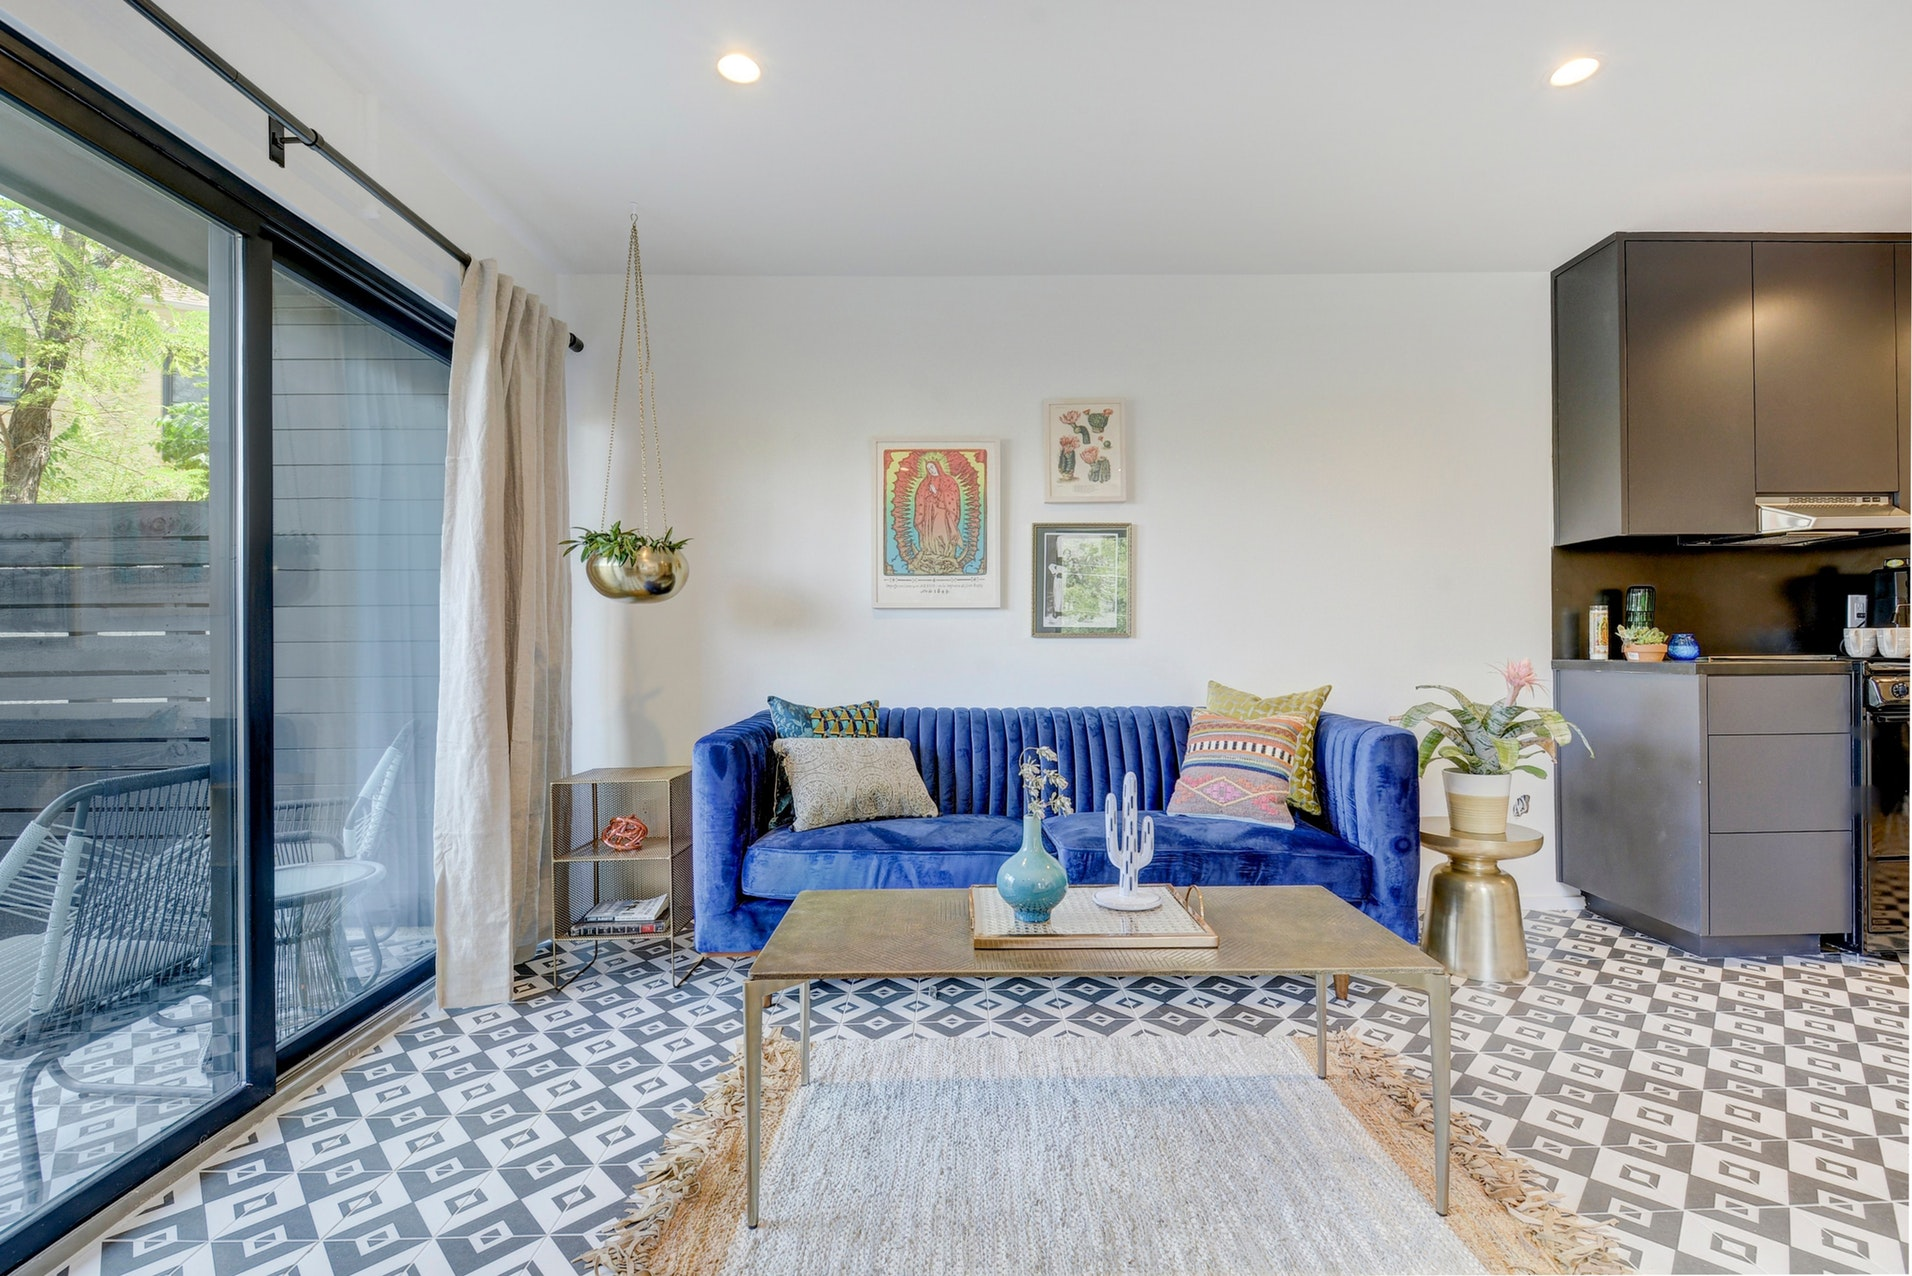 la Dueña - Short or long-term stays. Furnished & fully appointed units. Come for the night, stay for awhile.